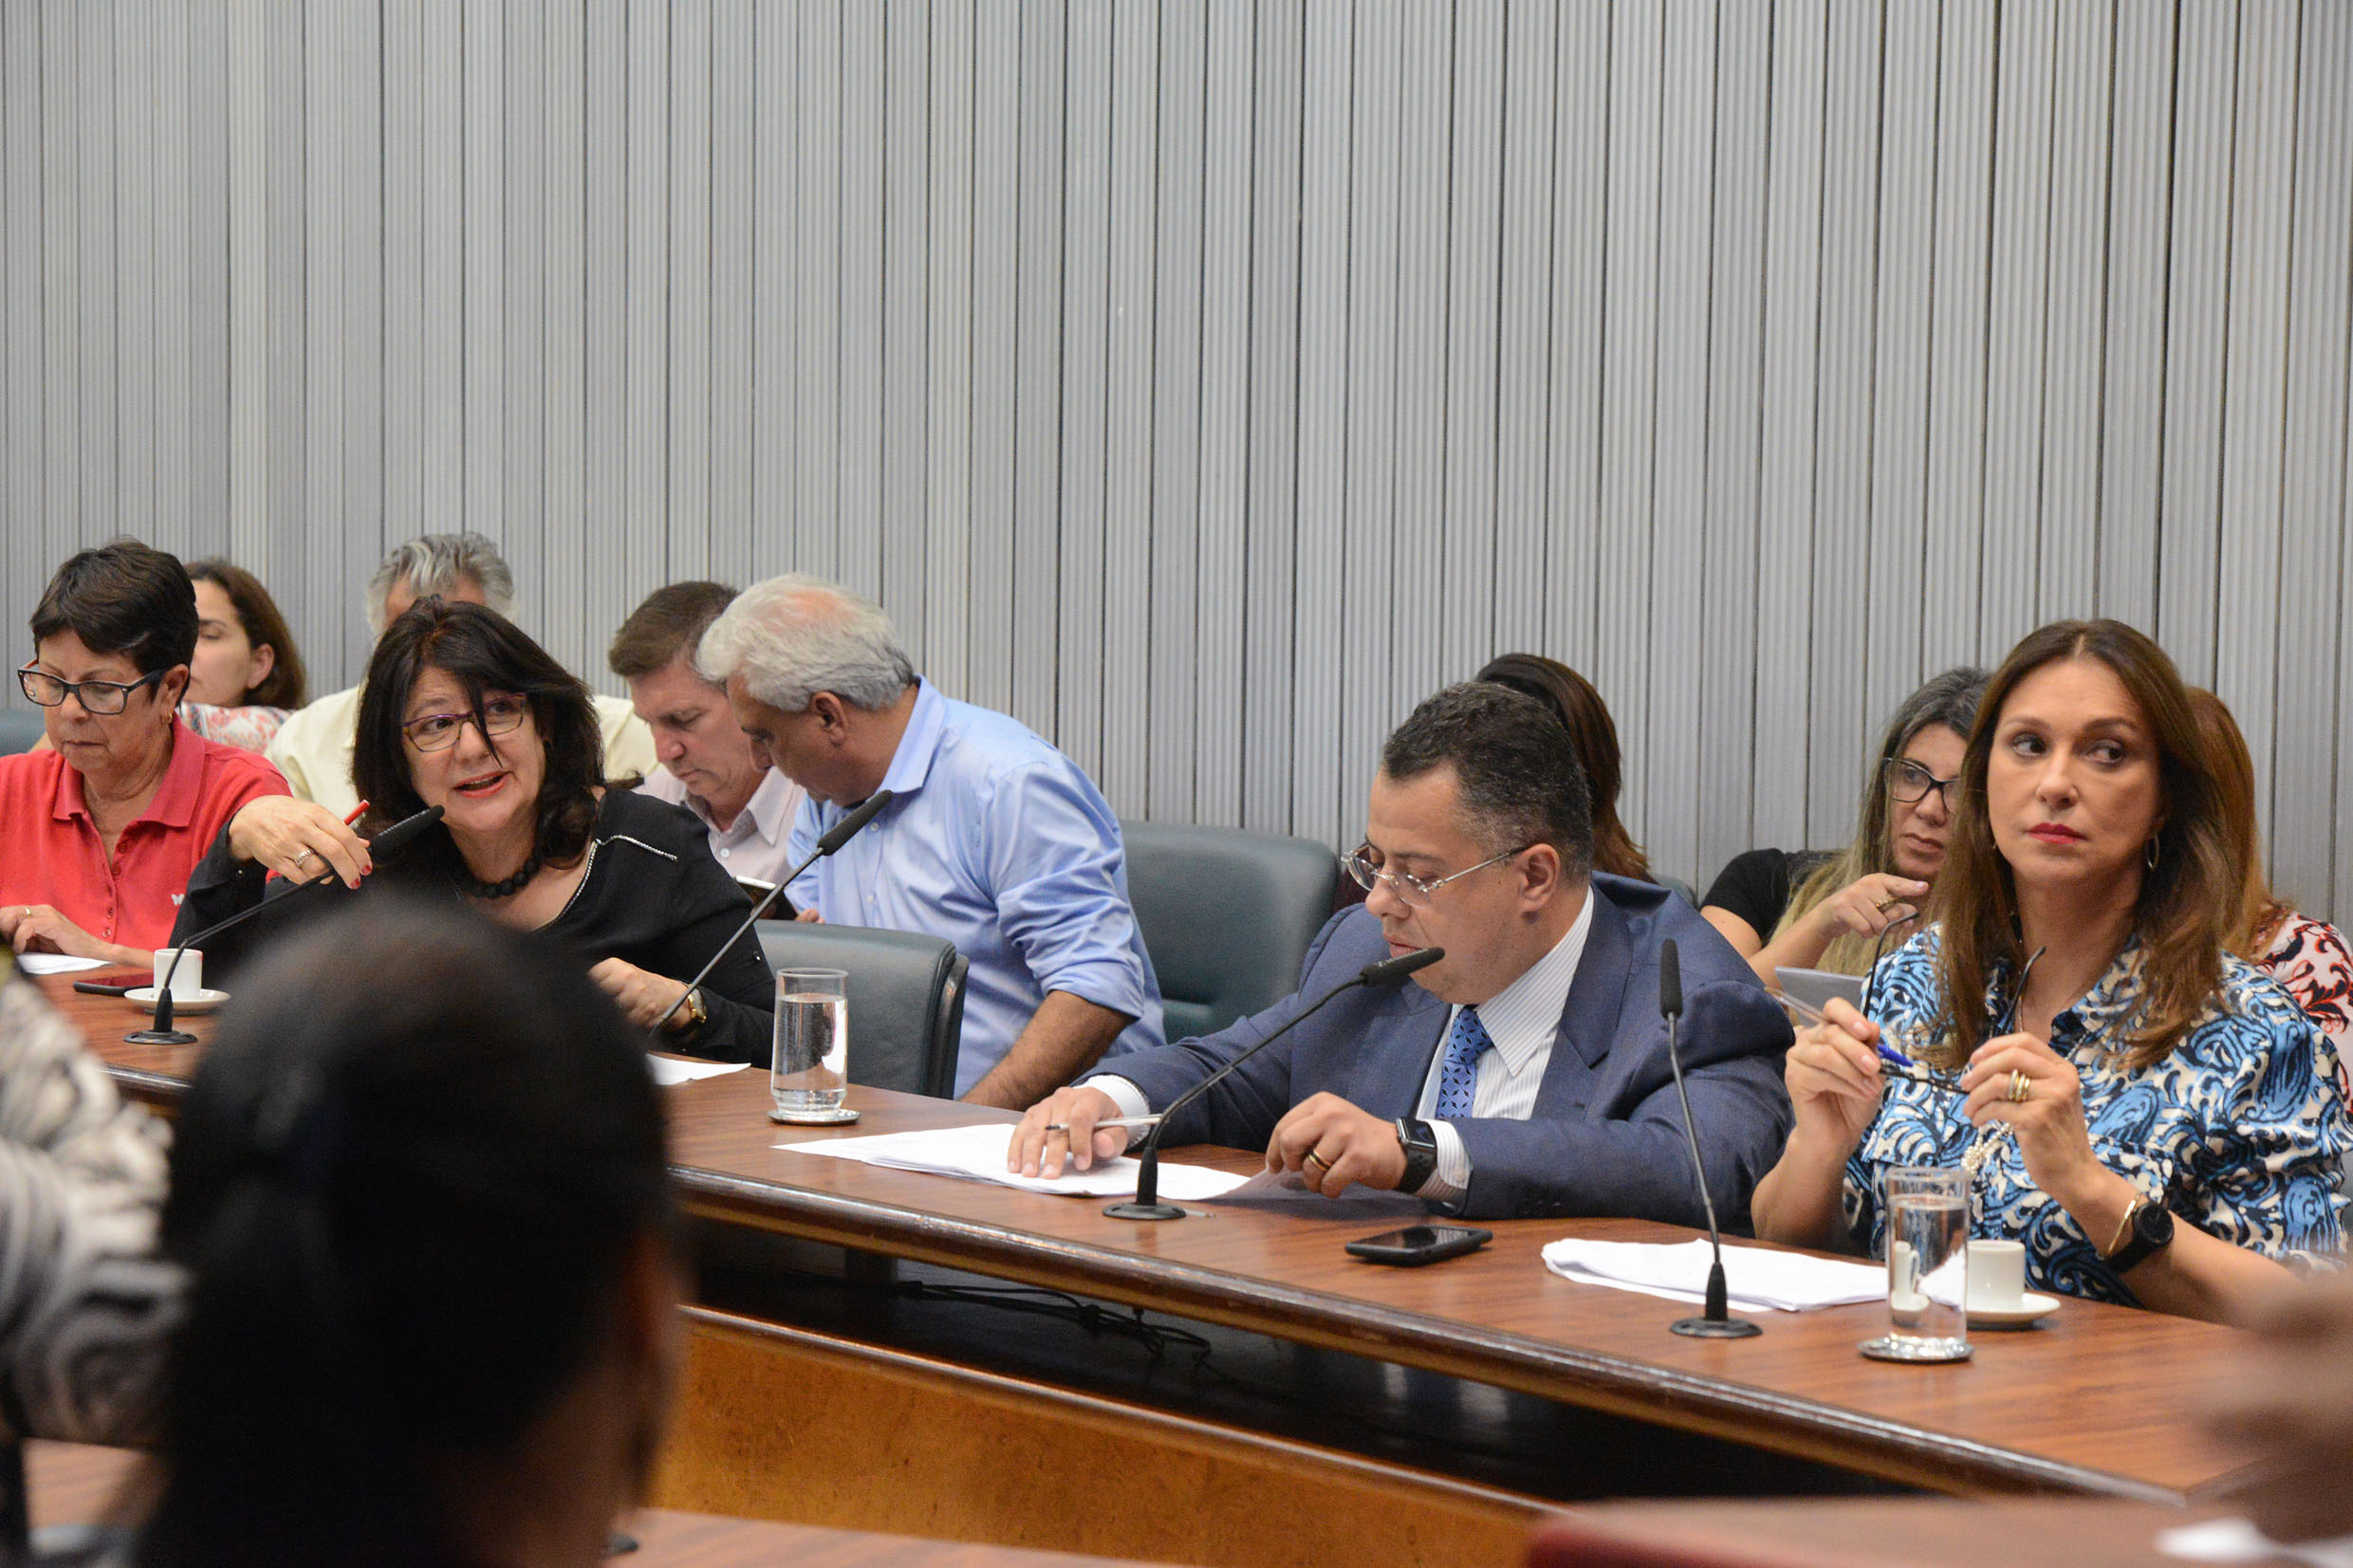 Parlamentares na comissão<a style='float:right' href='https://www3.al.sp.gov.br/repositorio/noticia/N-11-2018/fg228064.jpg' target=_blank><img src='/_img/material-file-download-white.png' width='14px' alt='Clique para baixar a imagem'></a>